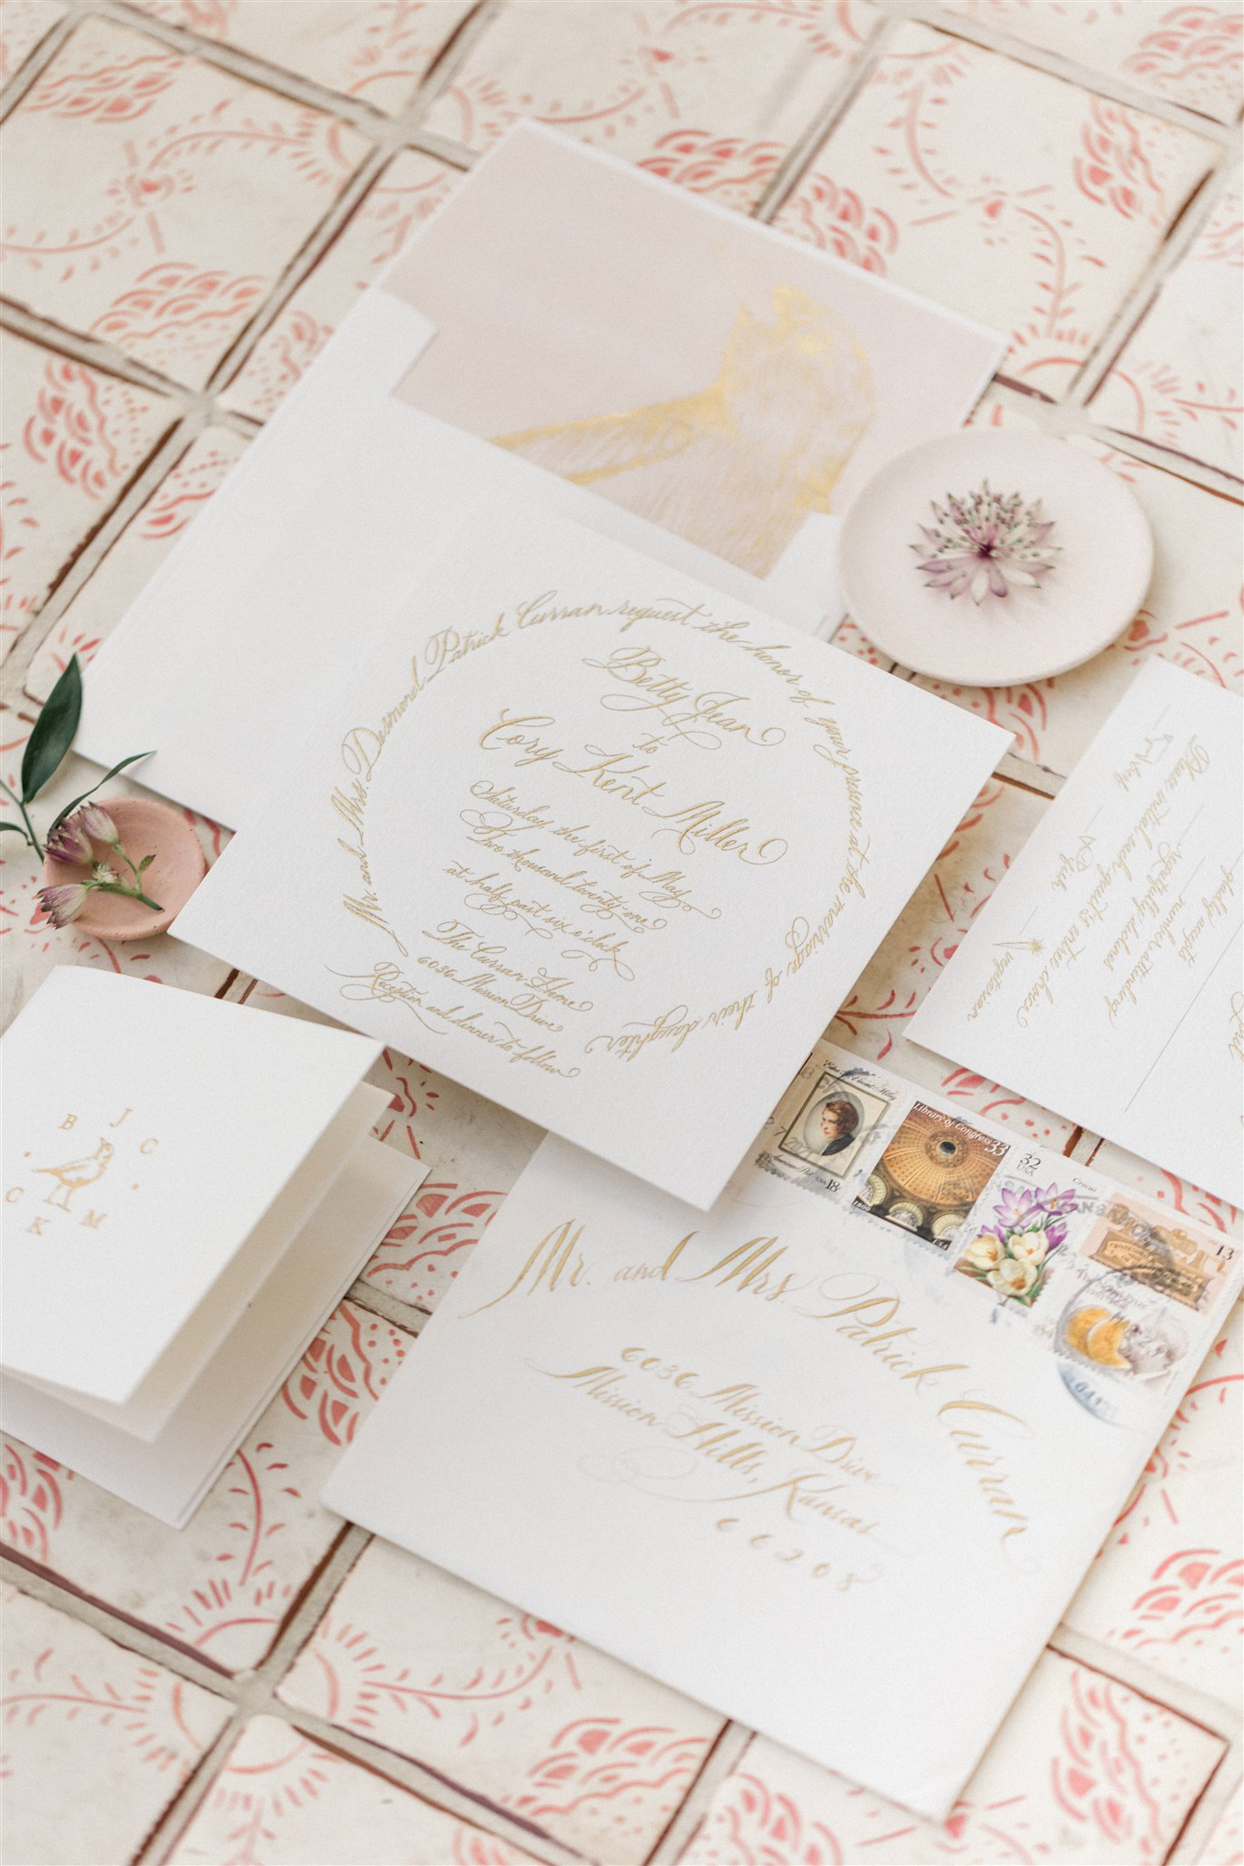 formal wedding invitation suite with gold foil